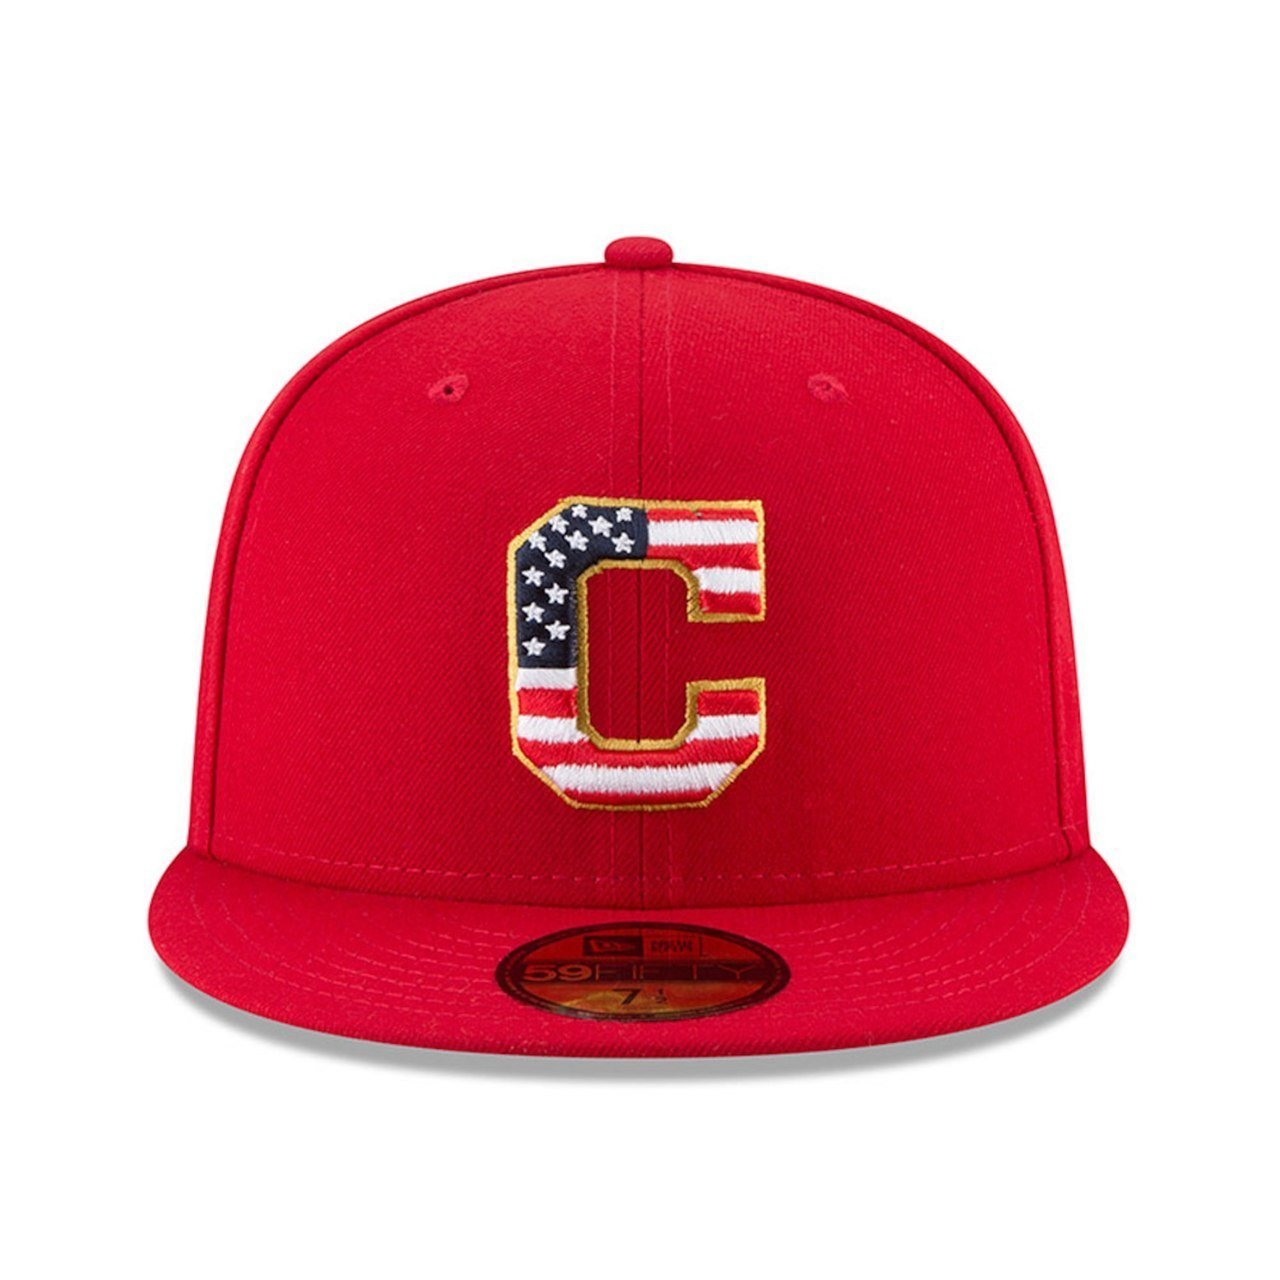 online store bbd34 4ceee Amazon.com  New Era Cleveland Indians 2018 July 4th Stars and Stripes  59FIFTY On Field Fitted Hat  Clothing